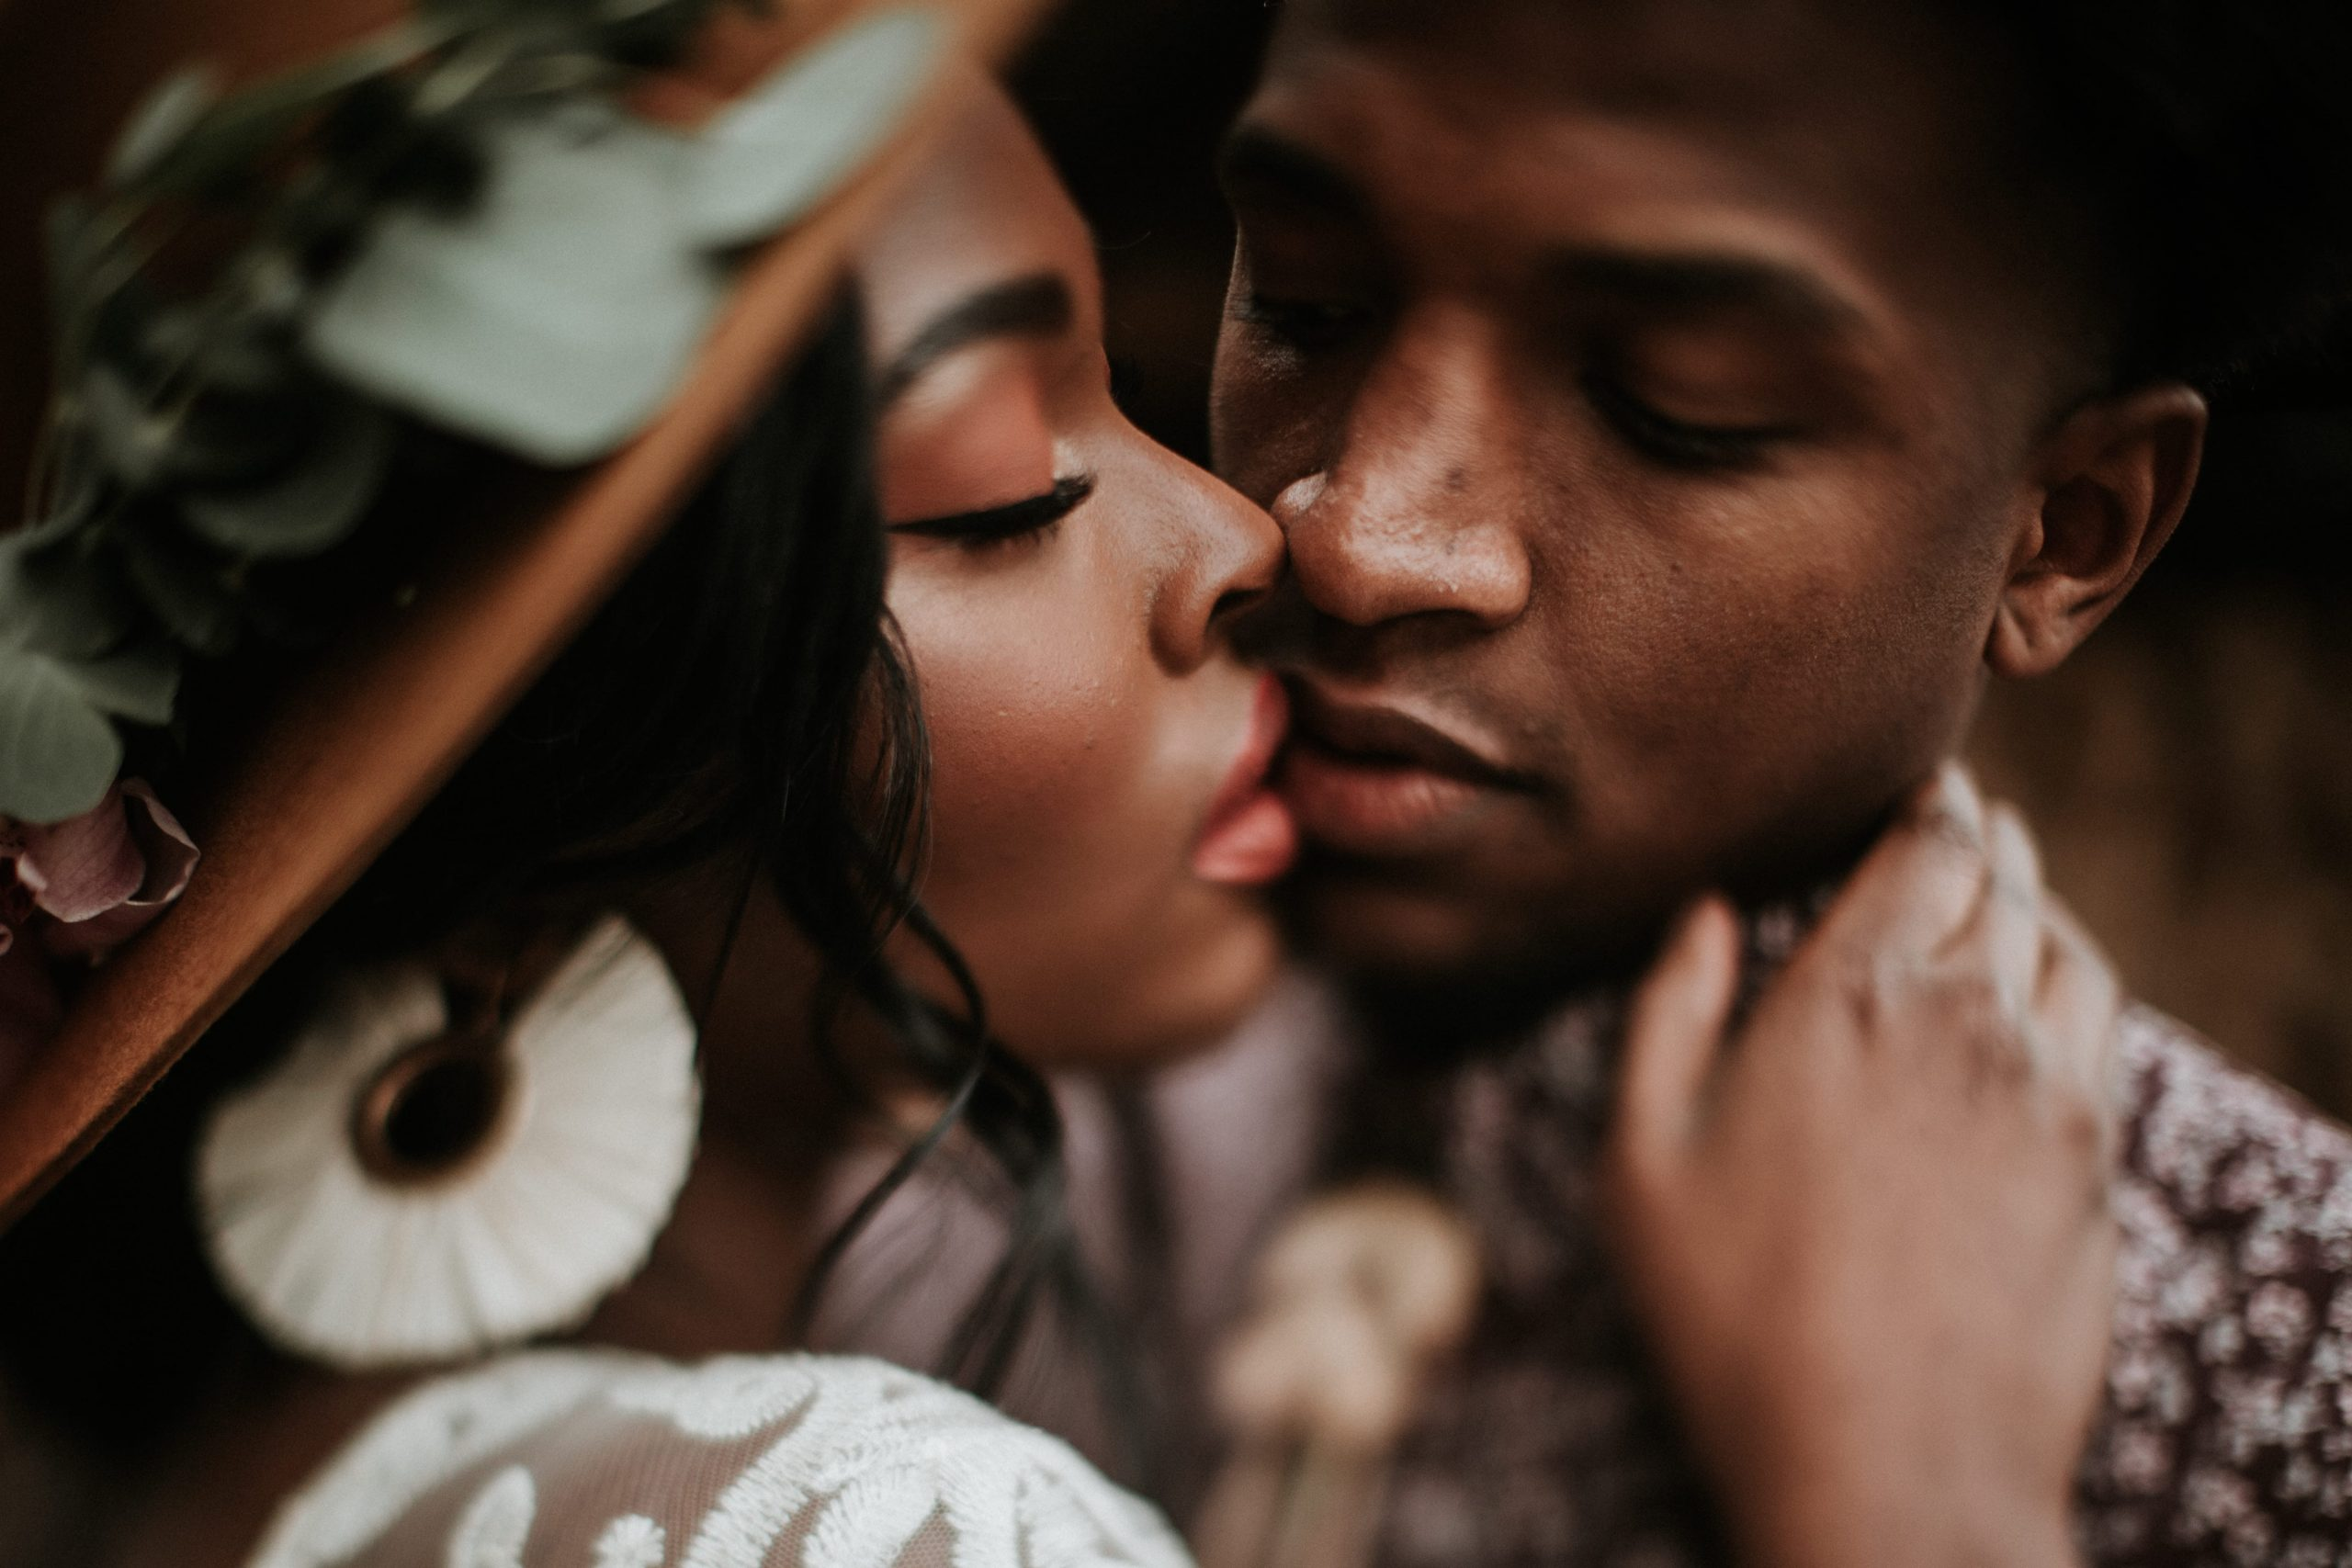 A man and woman kissing